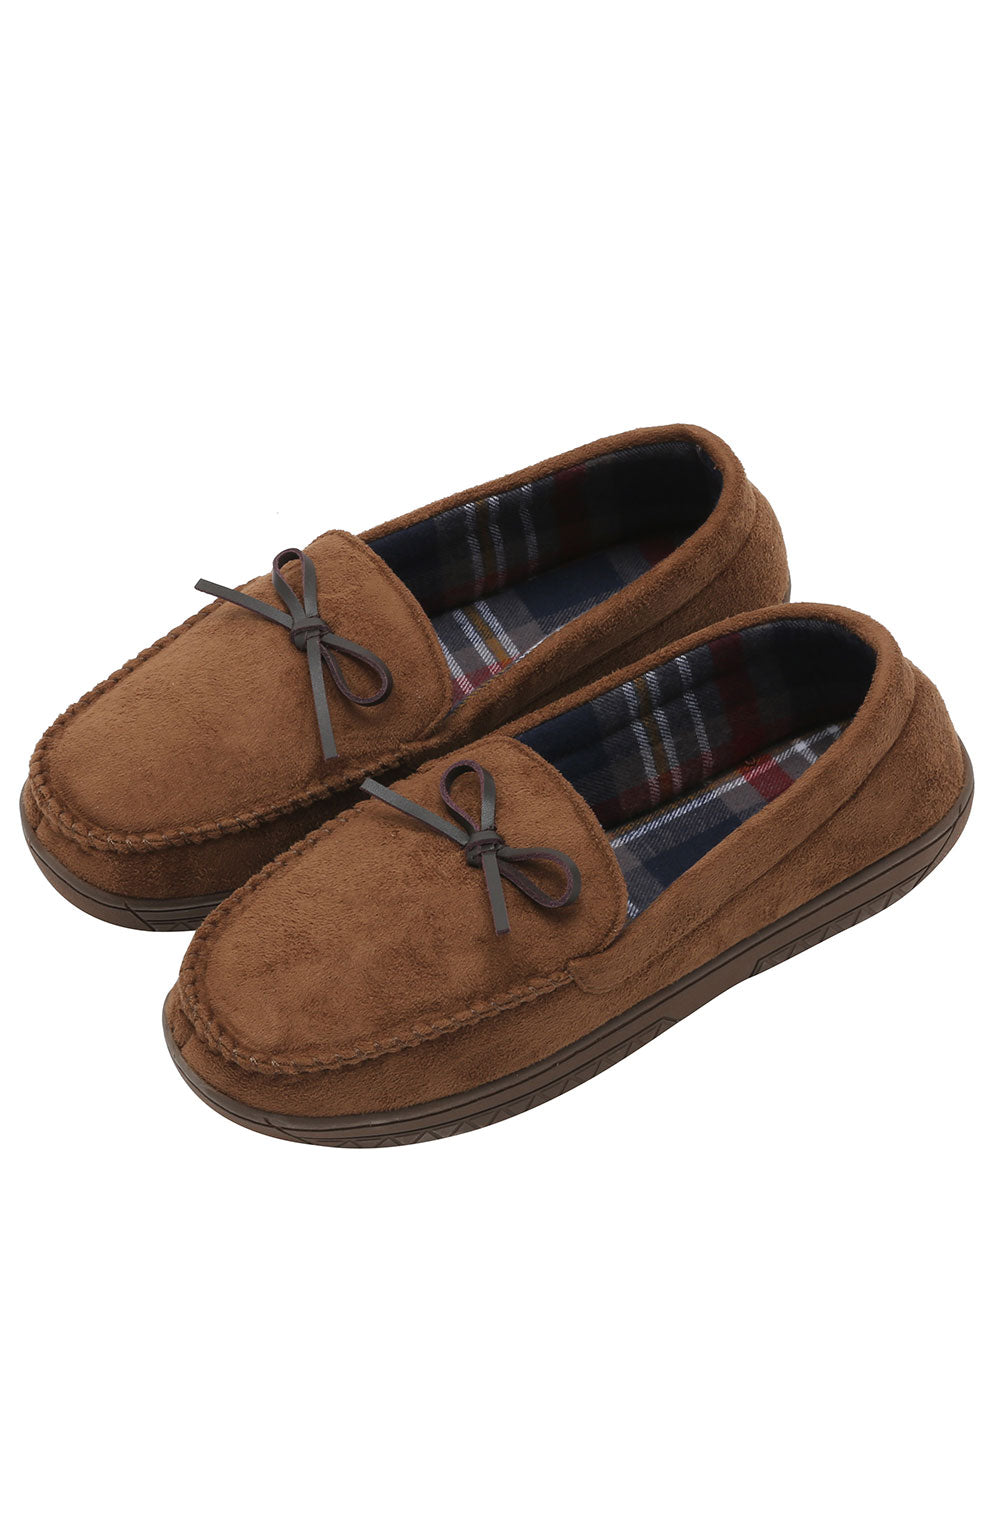 Brown Faux-Suede Moccasin Slipper - jachs